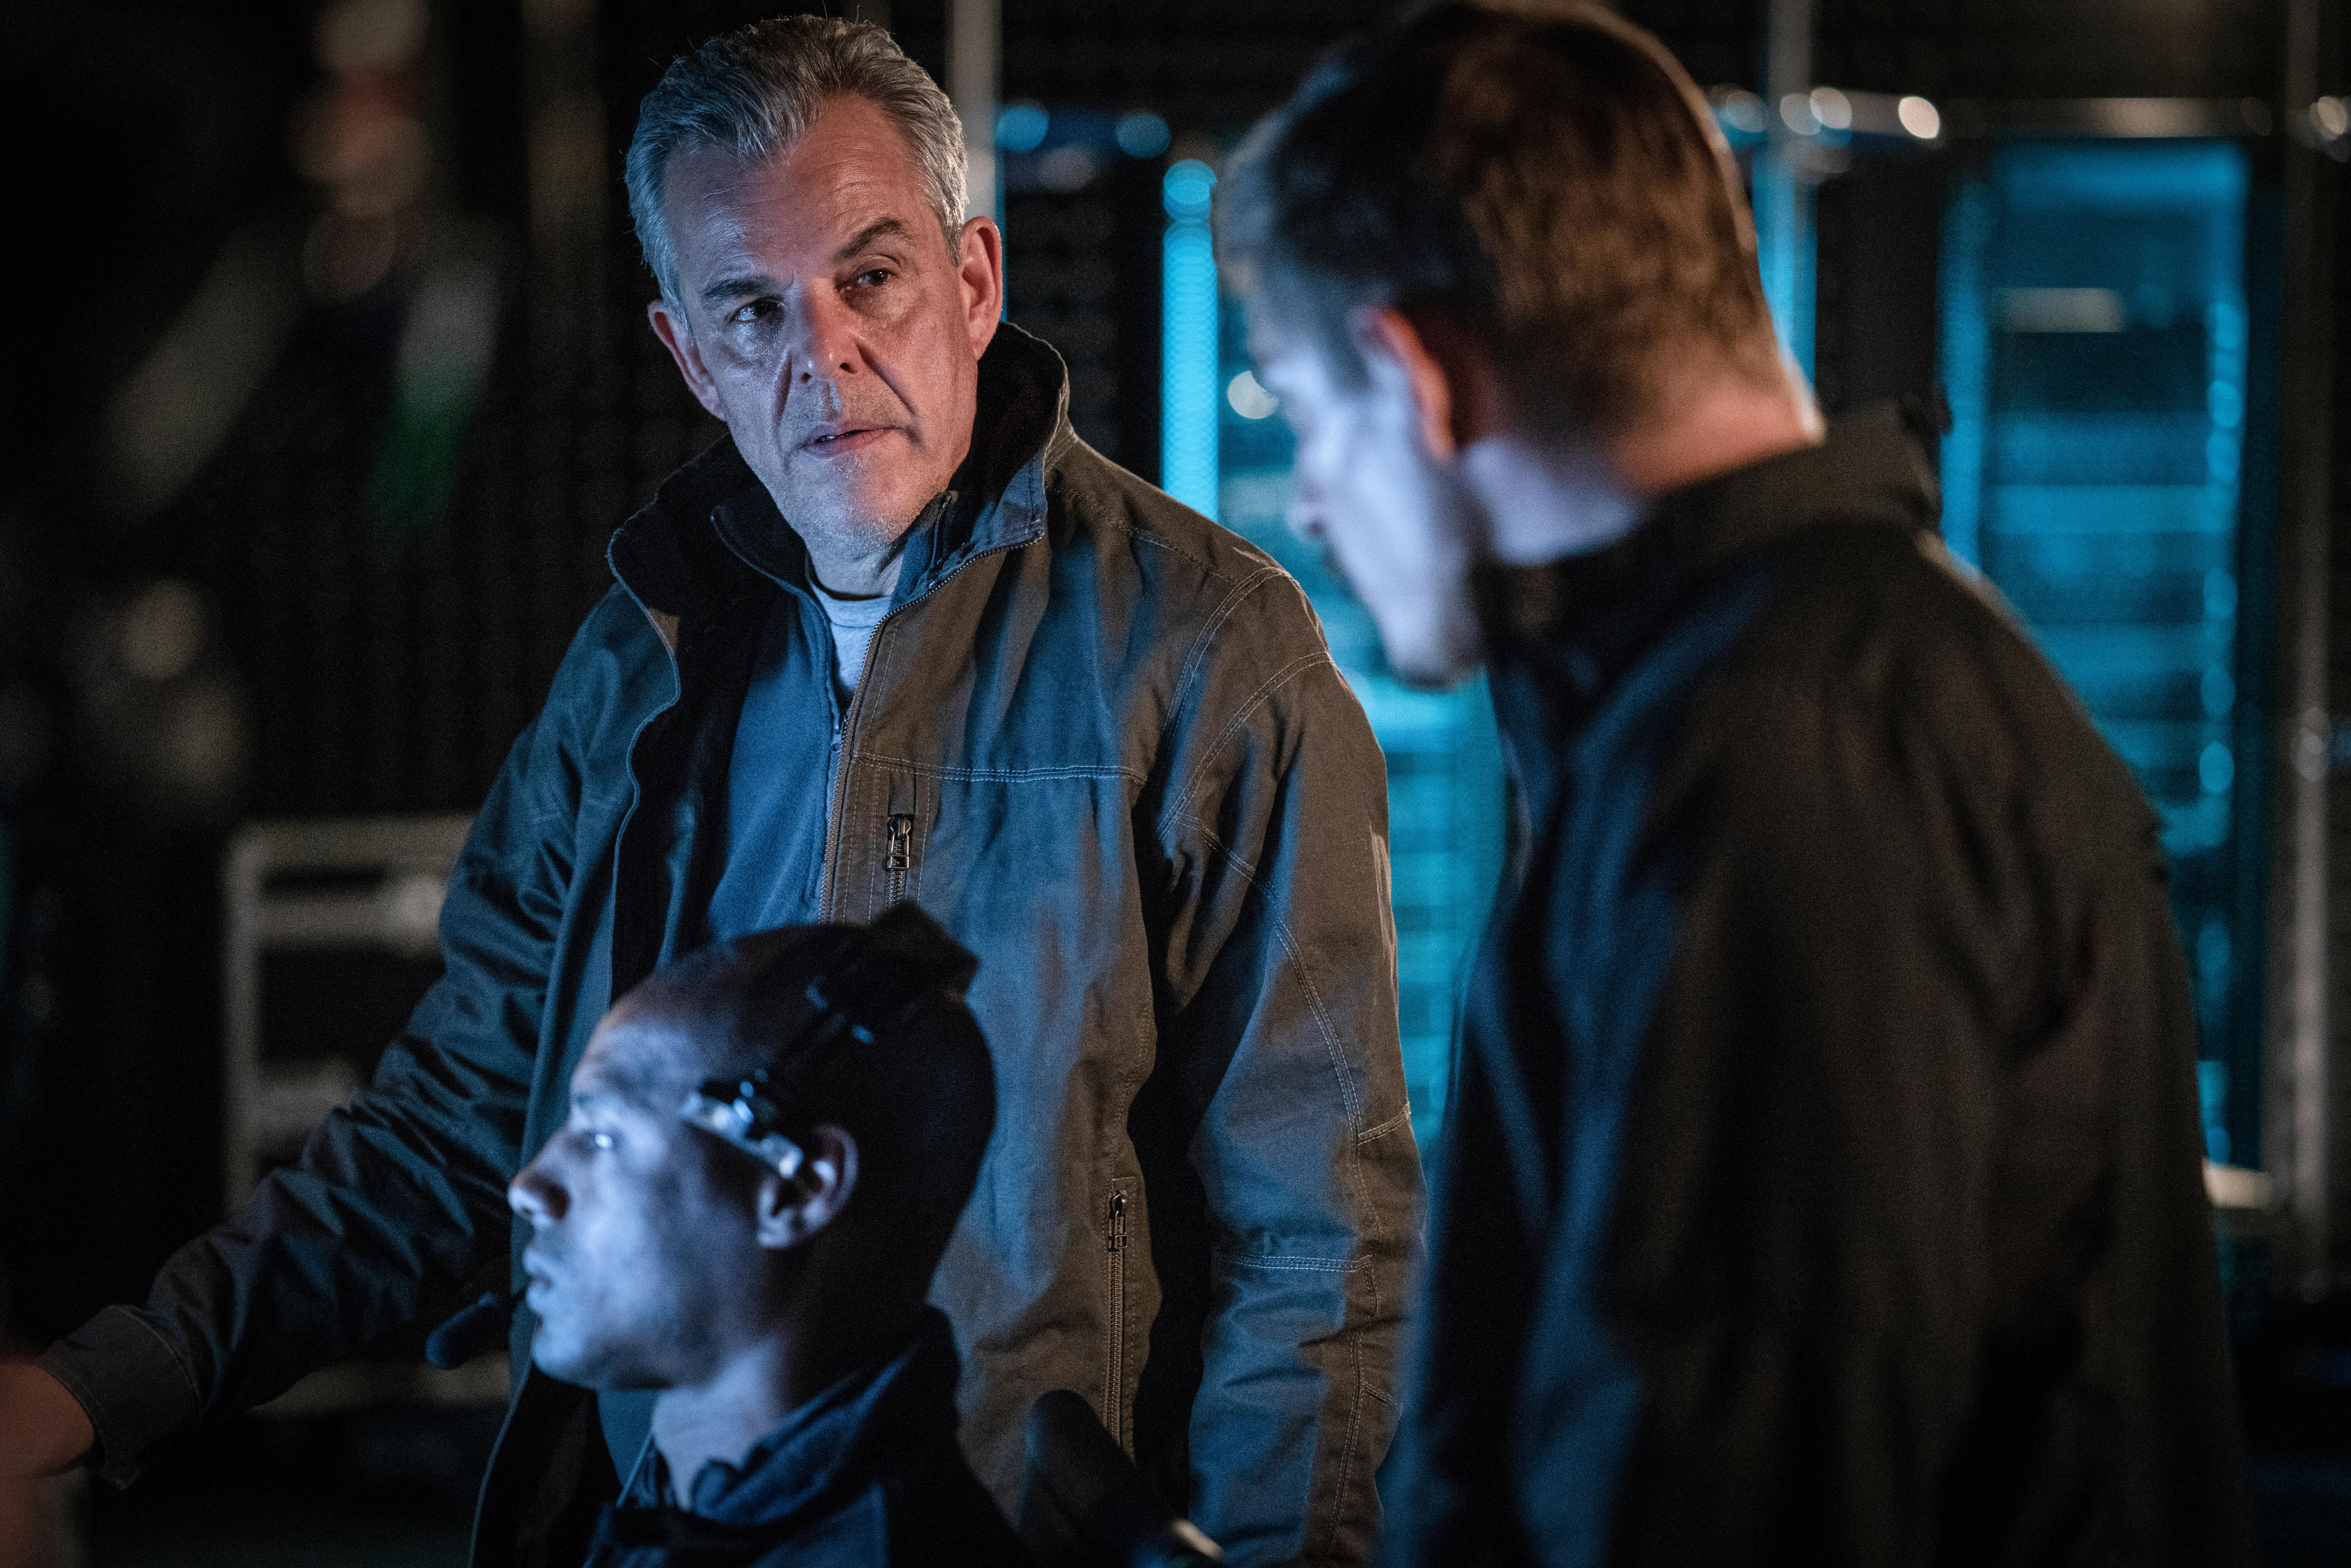 Danny Huston as 'Wade Jennings' and Travis Cole as 'Frederick Schmidt' in ANGEL HAS FALLEN. Photo Credit: Simon Versano.